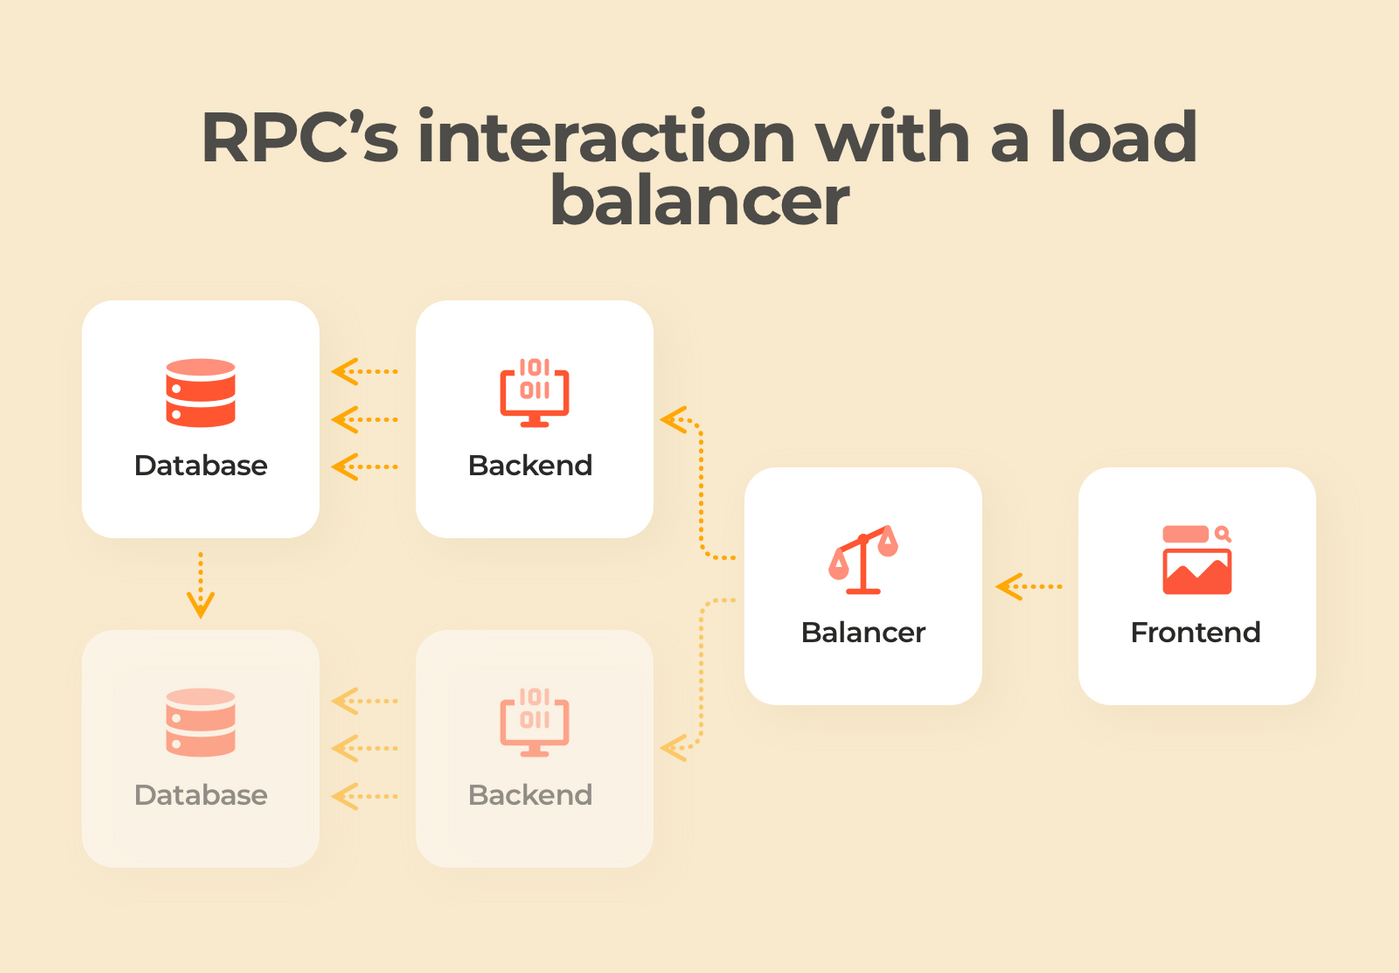 RPC interaction with a load balancer